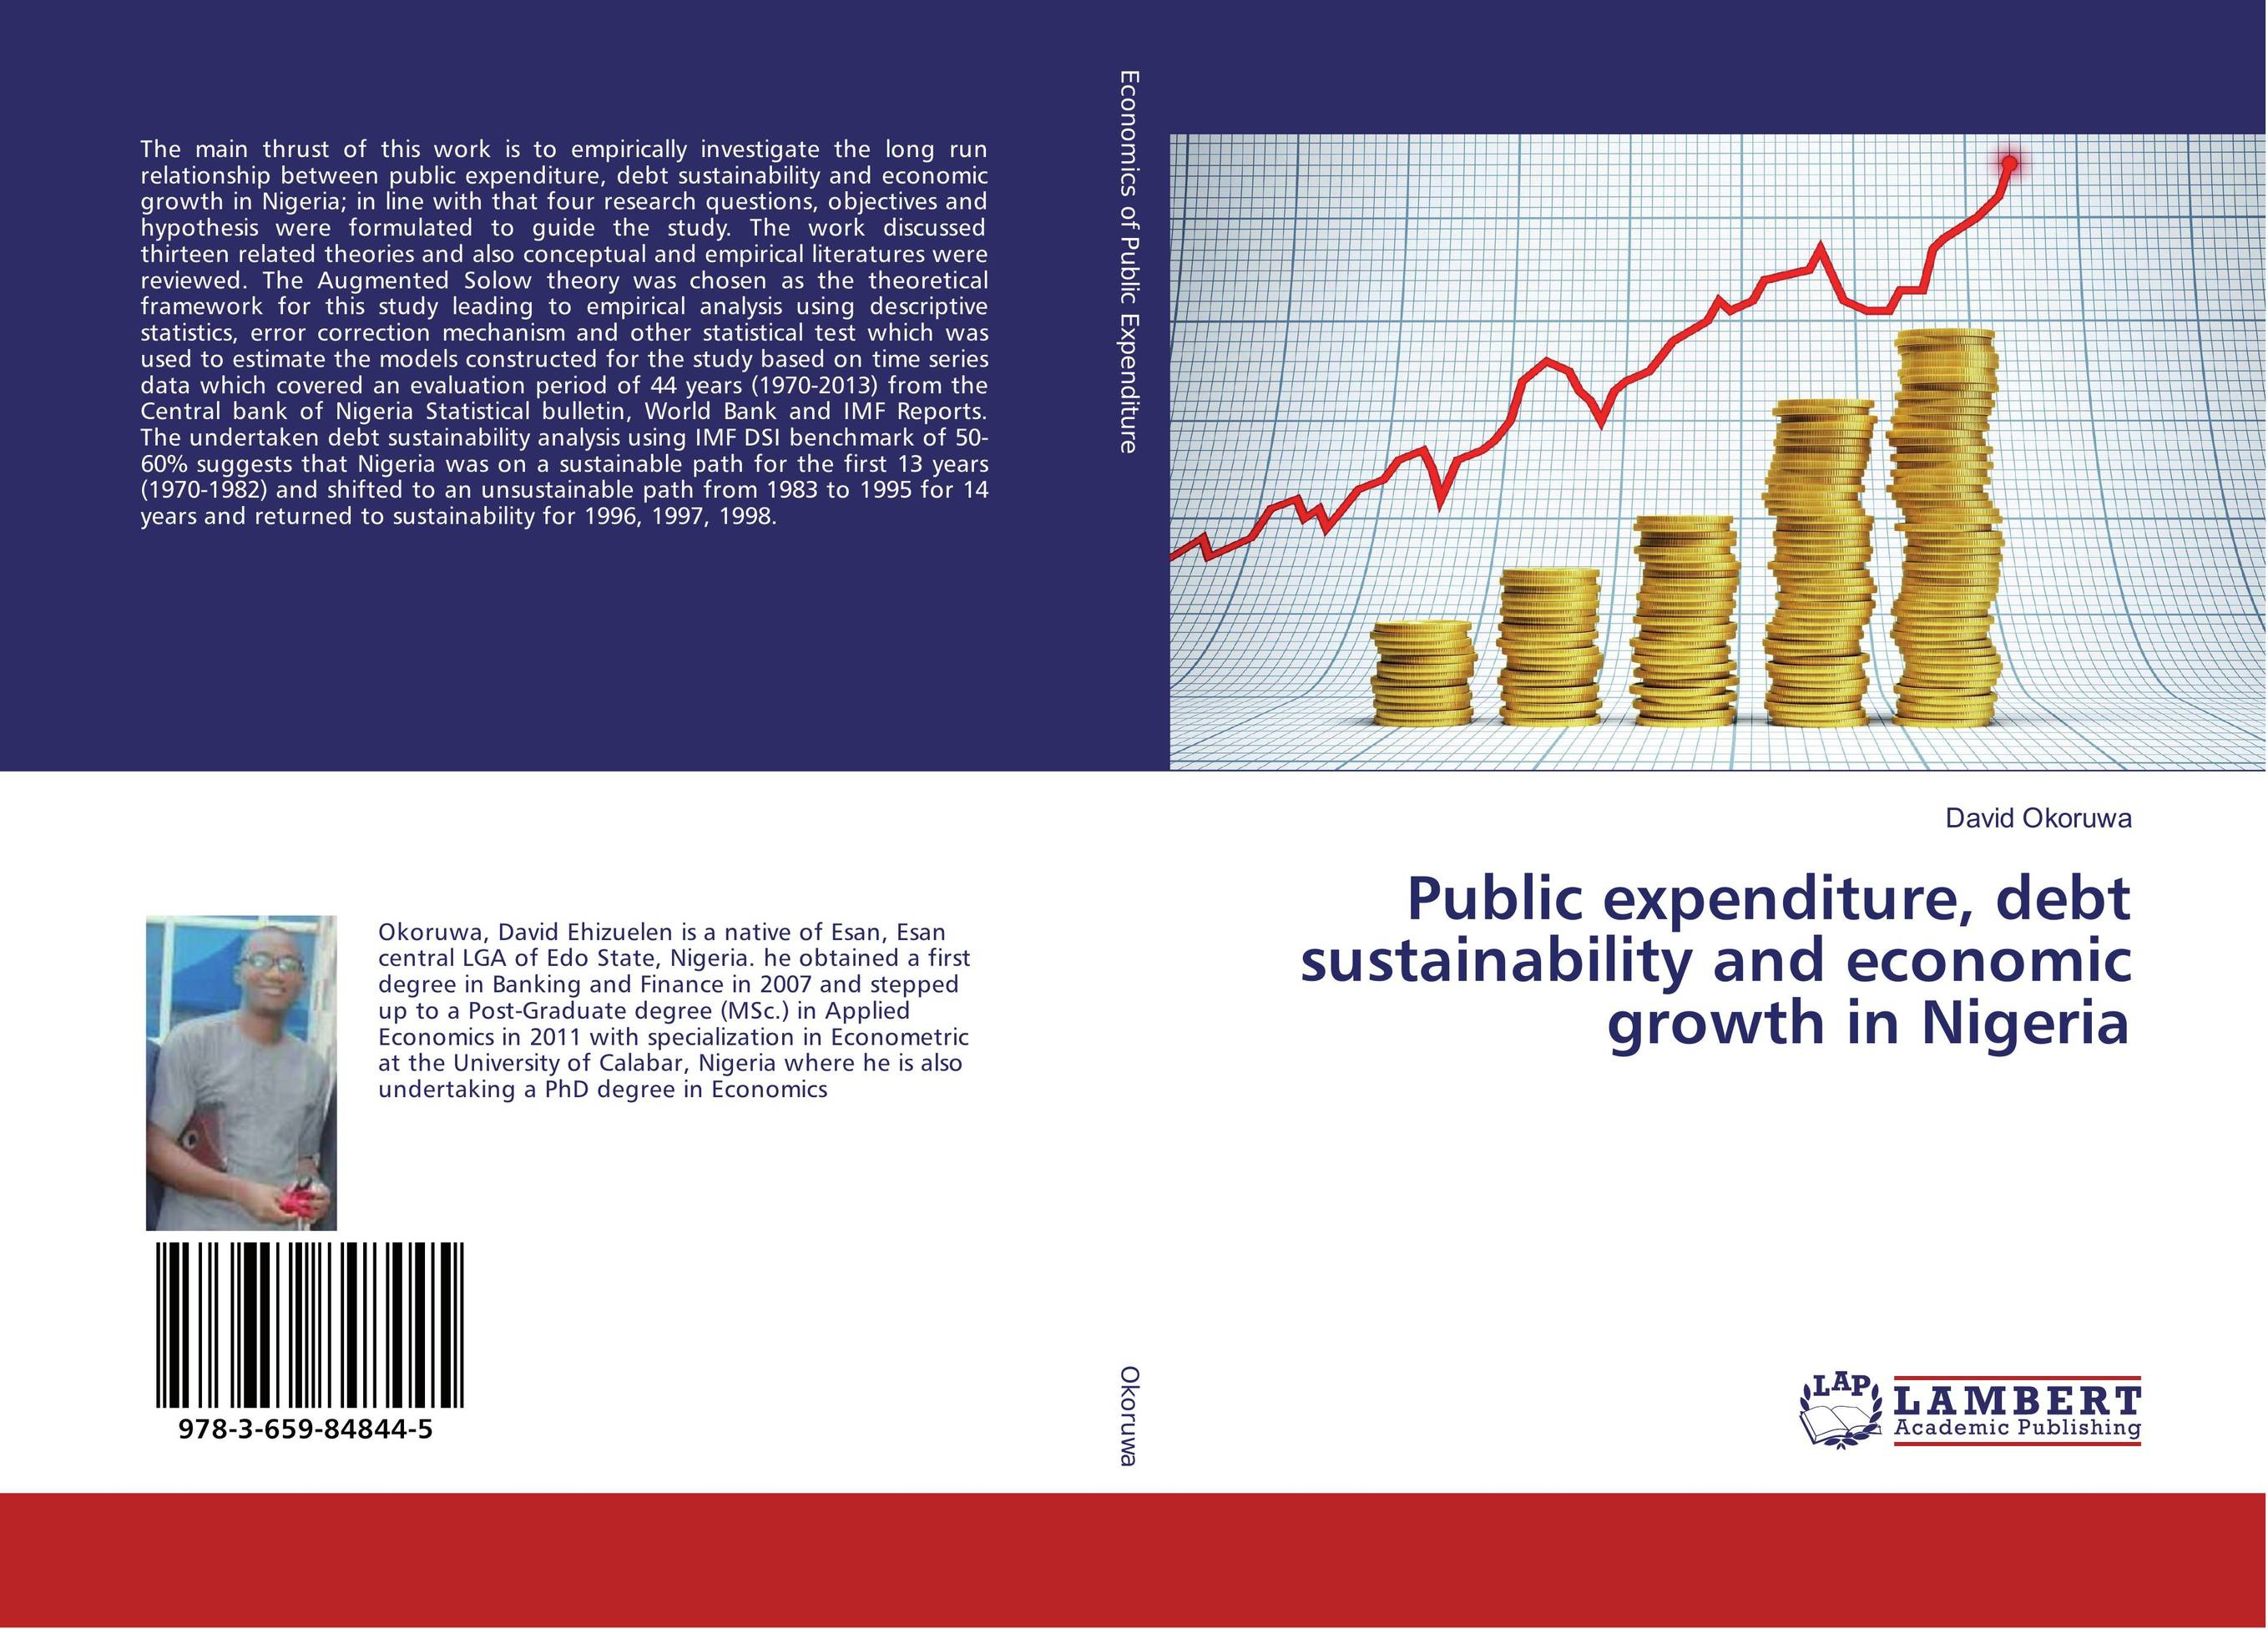 Public expenditure, debt sustainability and economic growth in Nigeria arcade ndoricimpa inflation output growth and their uncertainties in south africa empirical evidence from an asymmetric multivariate garch m model